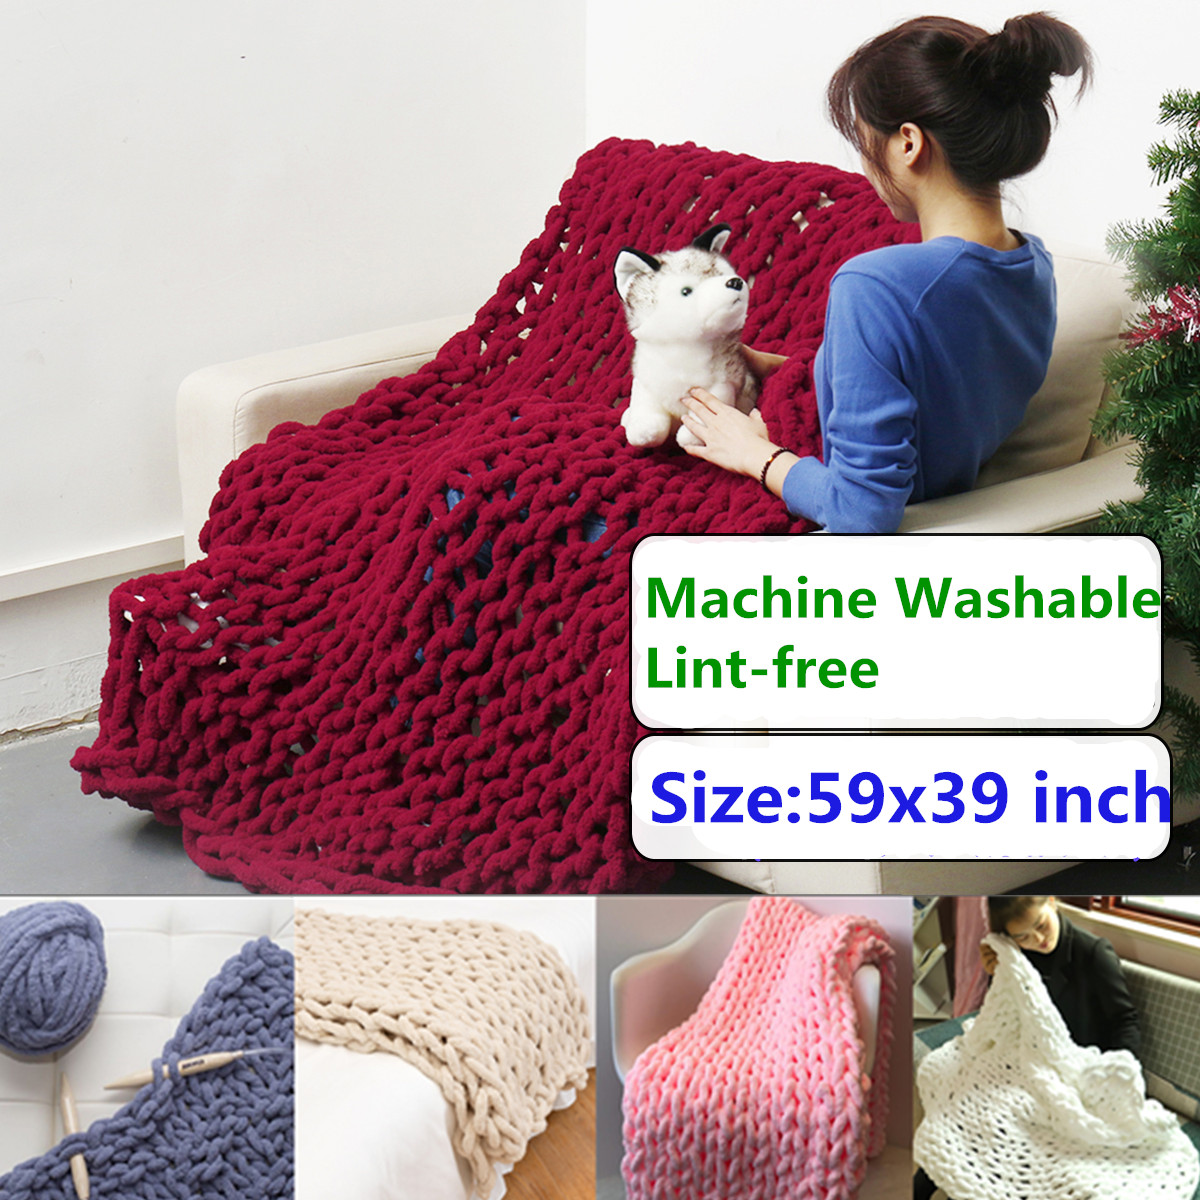 59x39 inch Washable Hand-woven Bulky Warm Soft Chunky Knit Blanket Lint-free Thick Yarn Knitted Bedding Sofa Throw